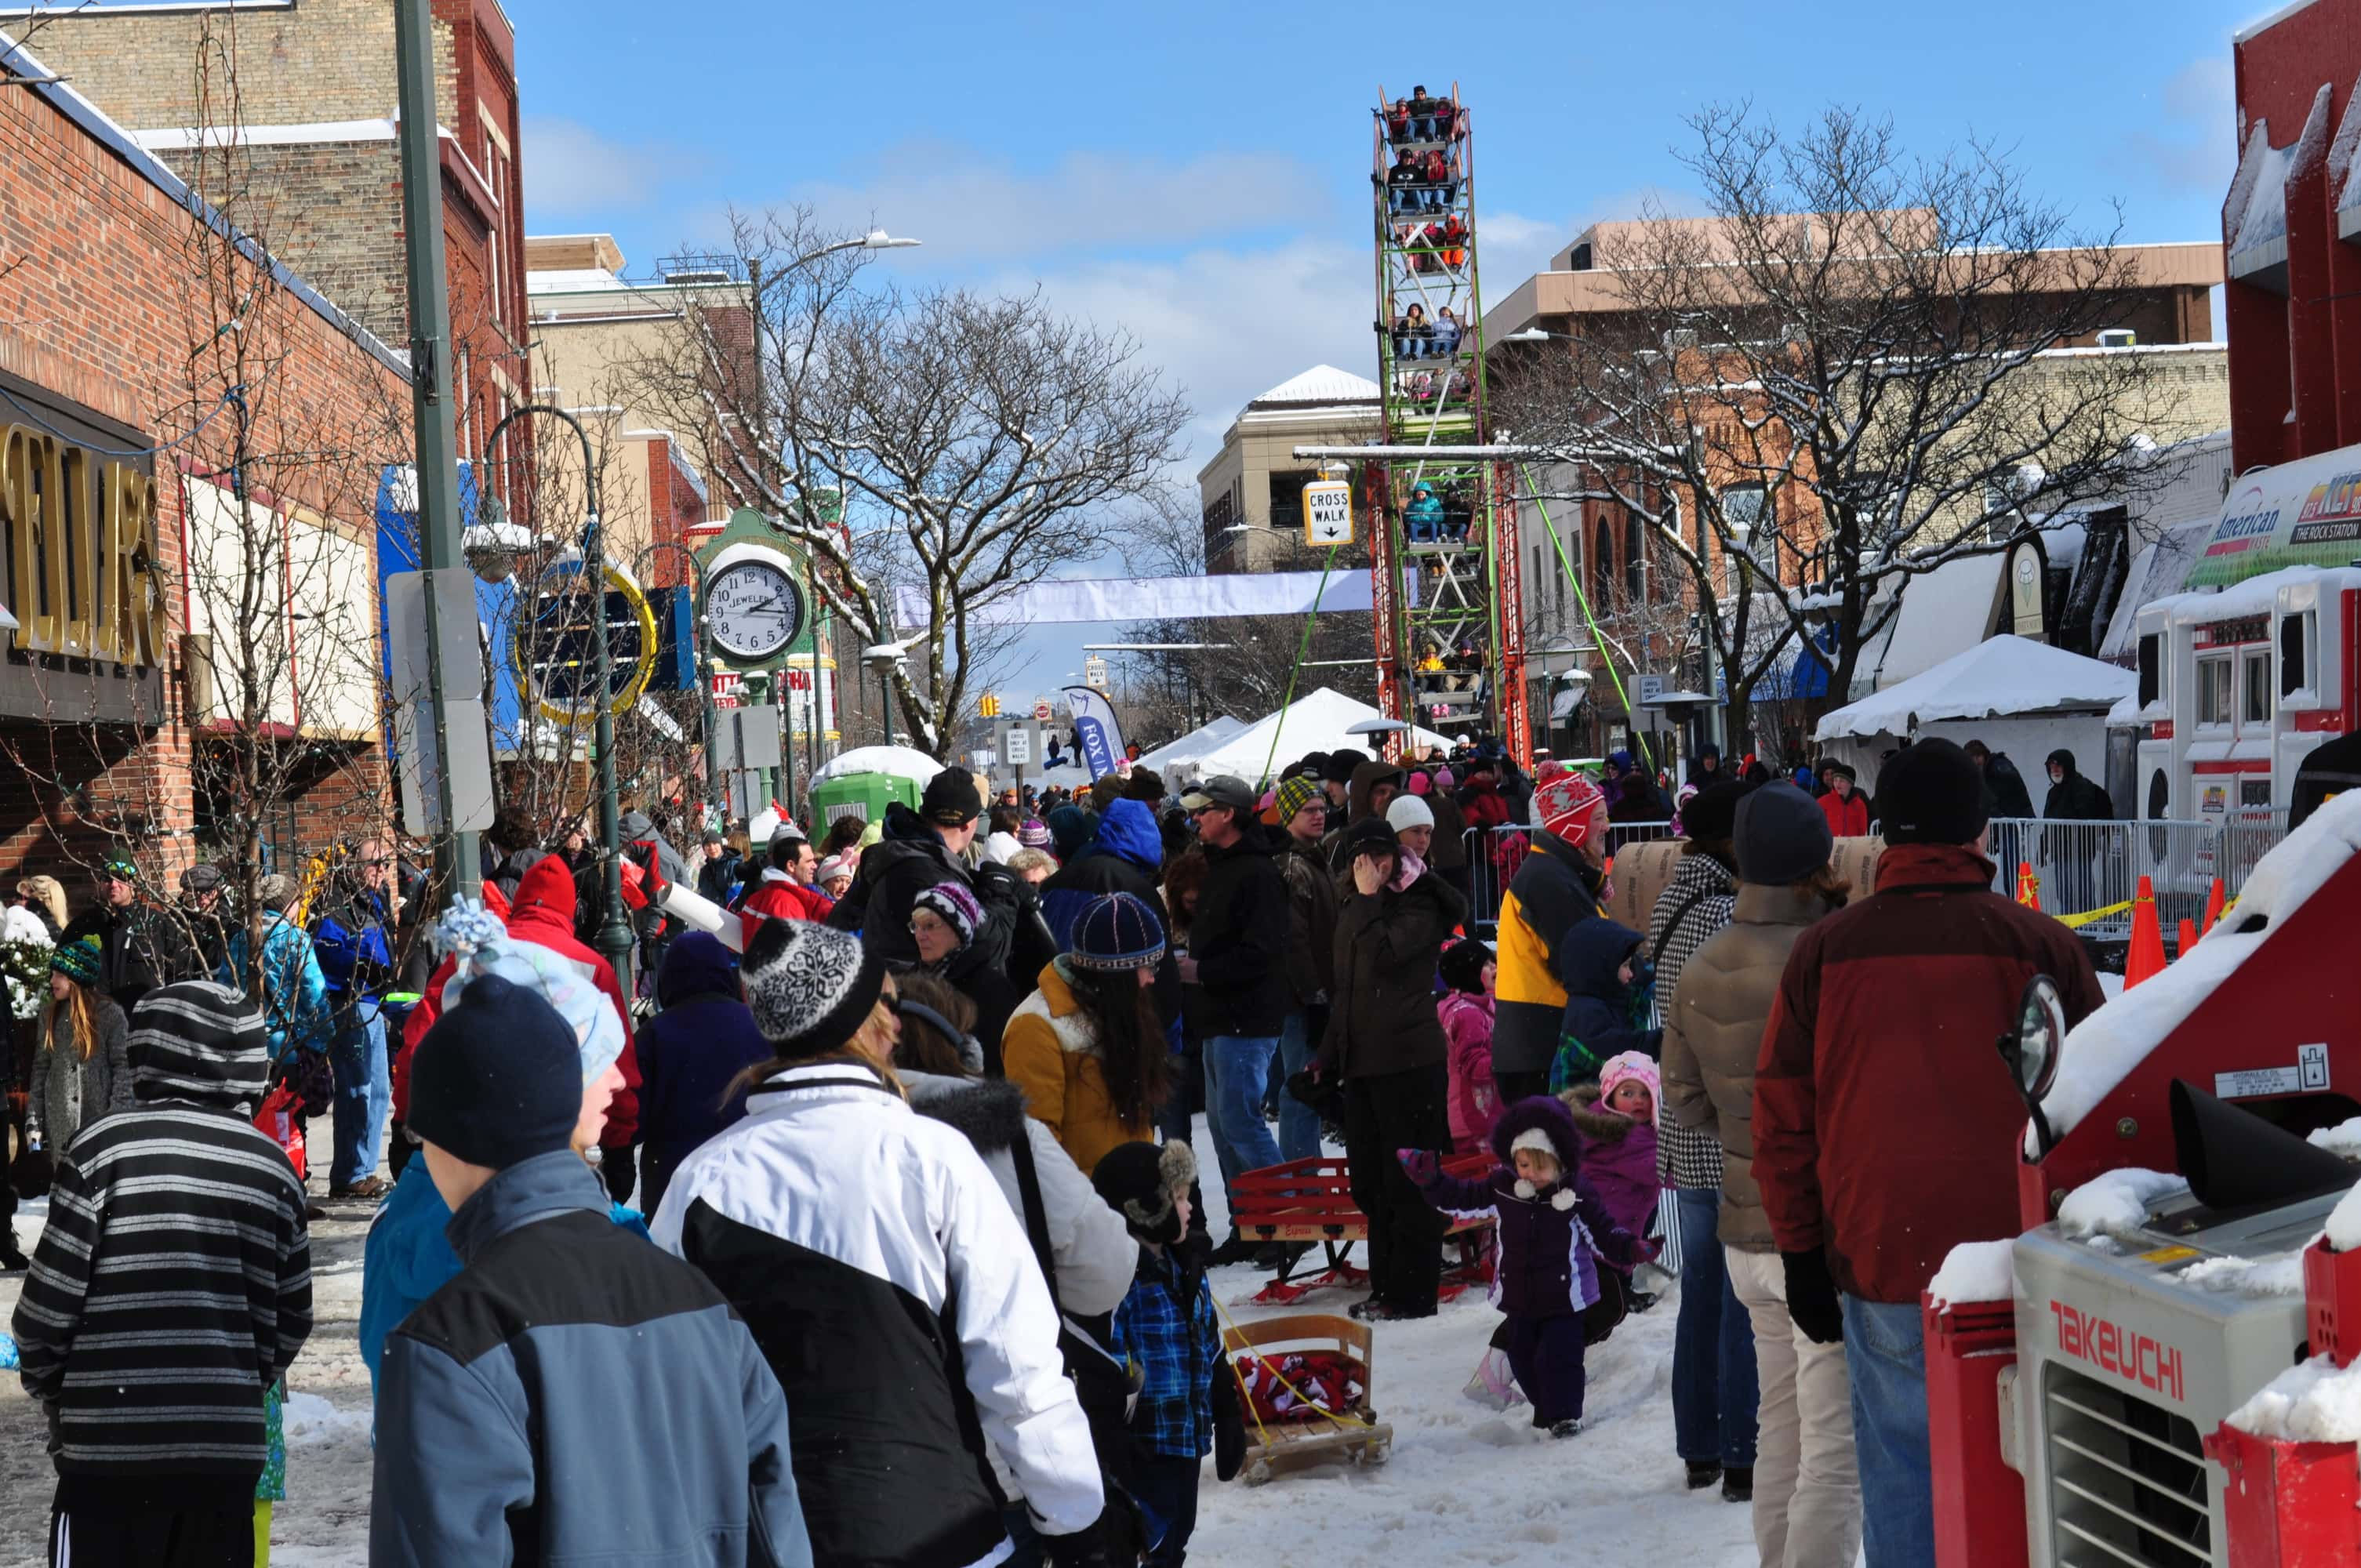 rnorth_crowed_winter_fest_front_street